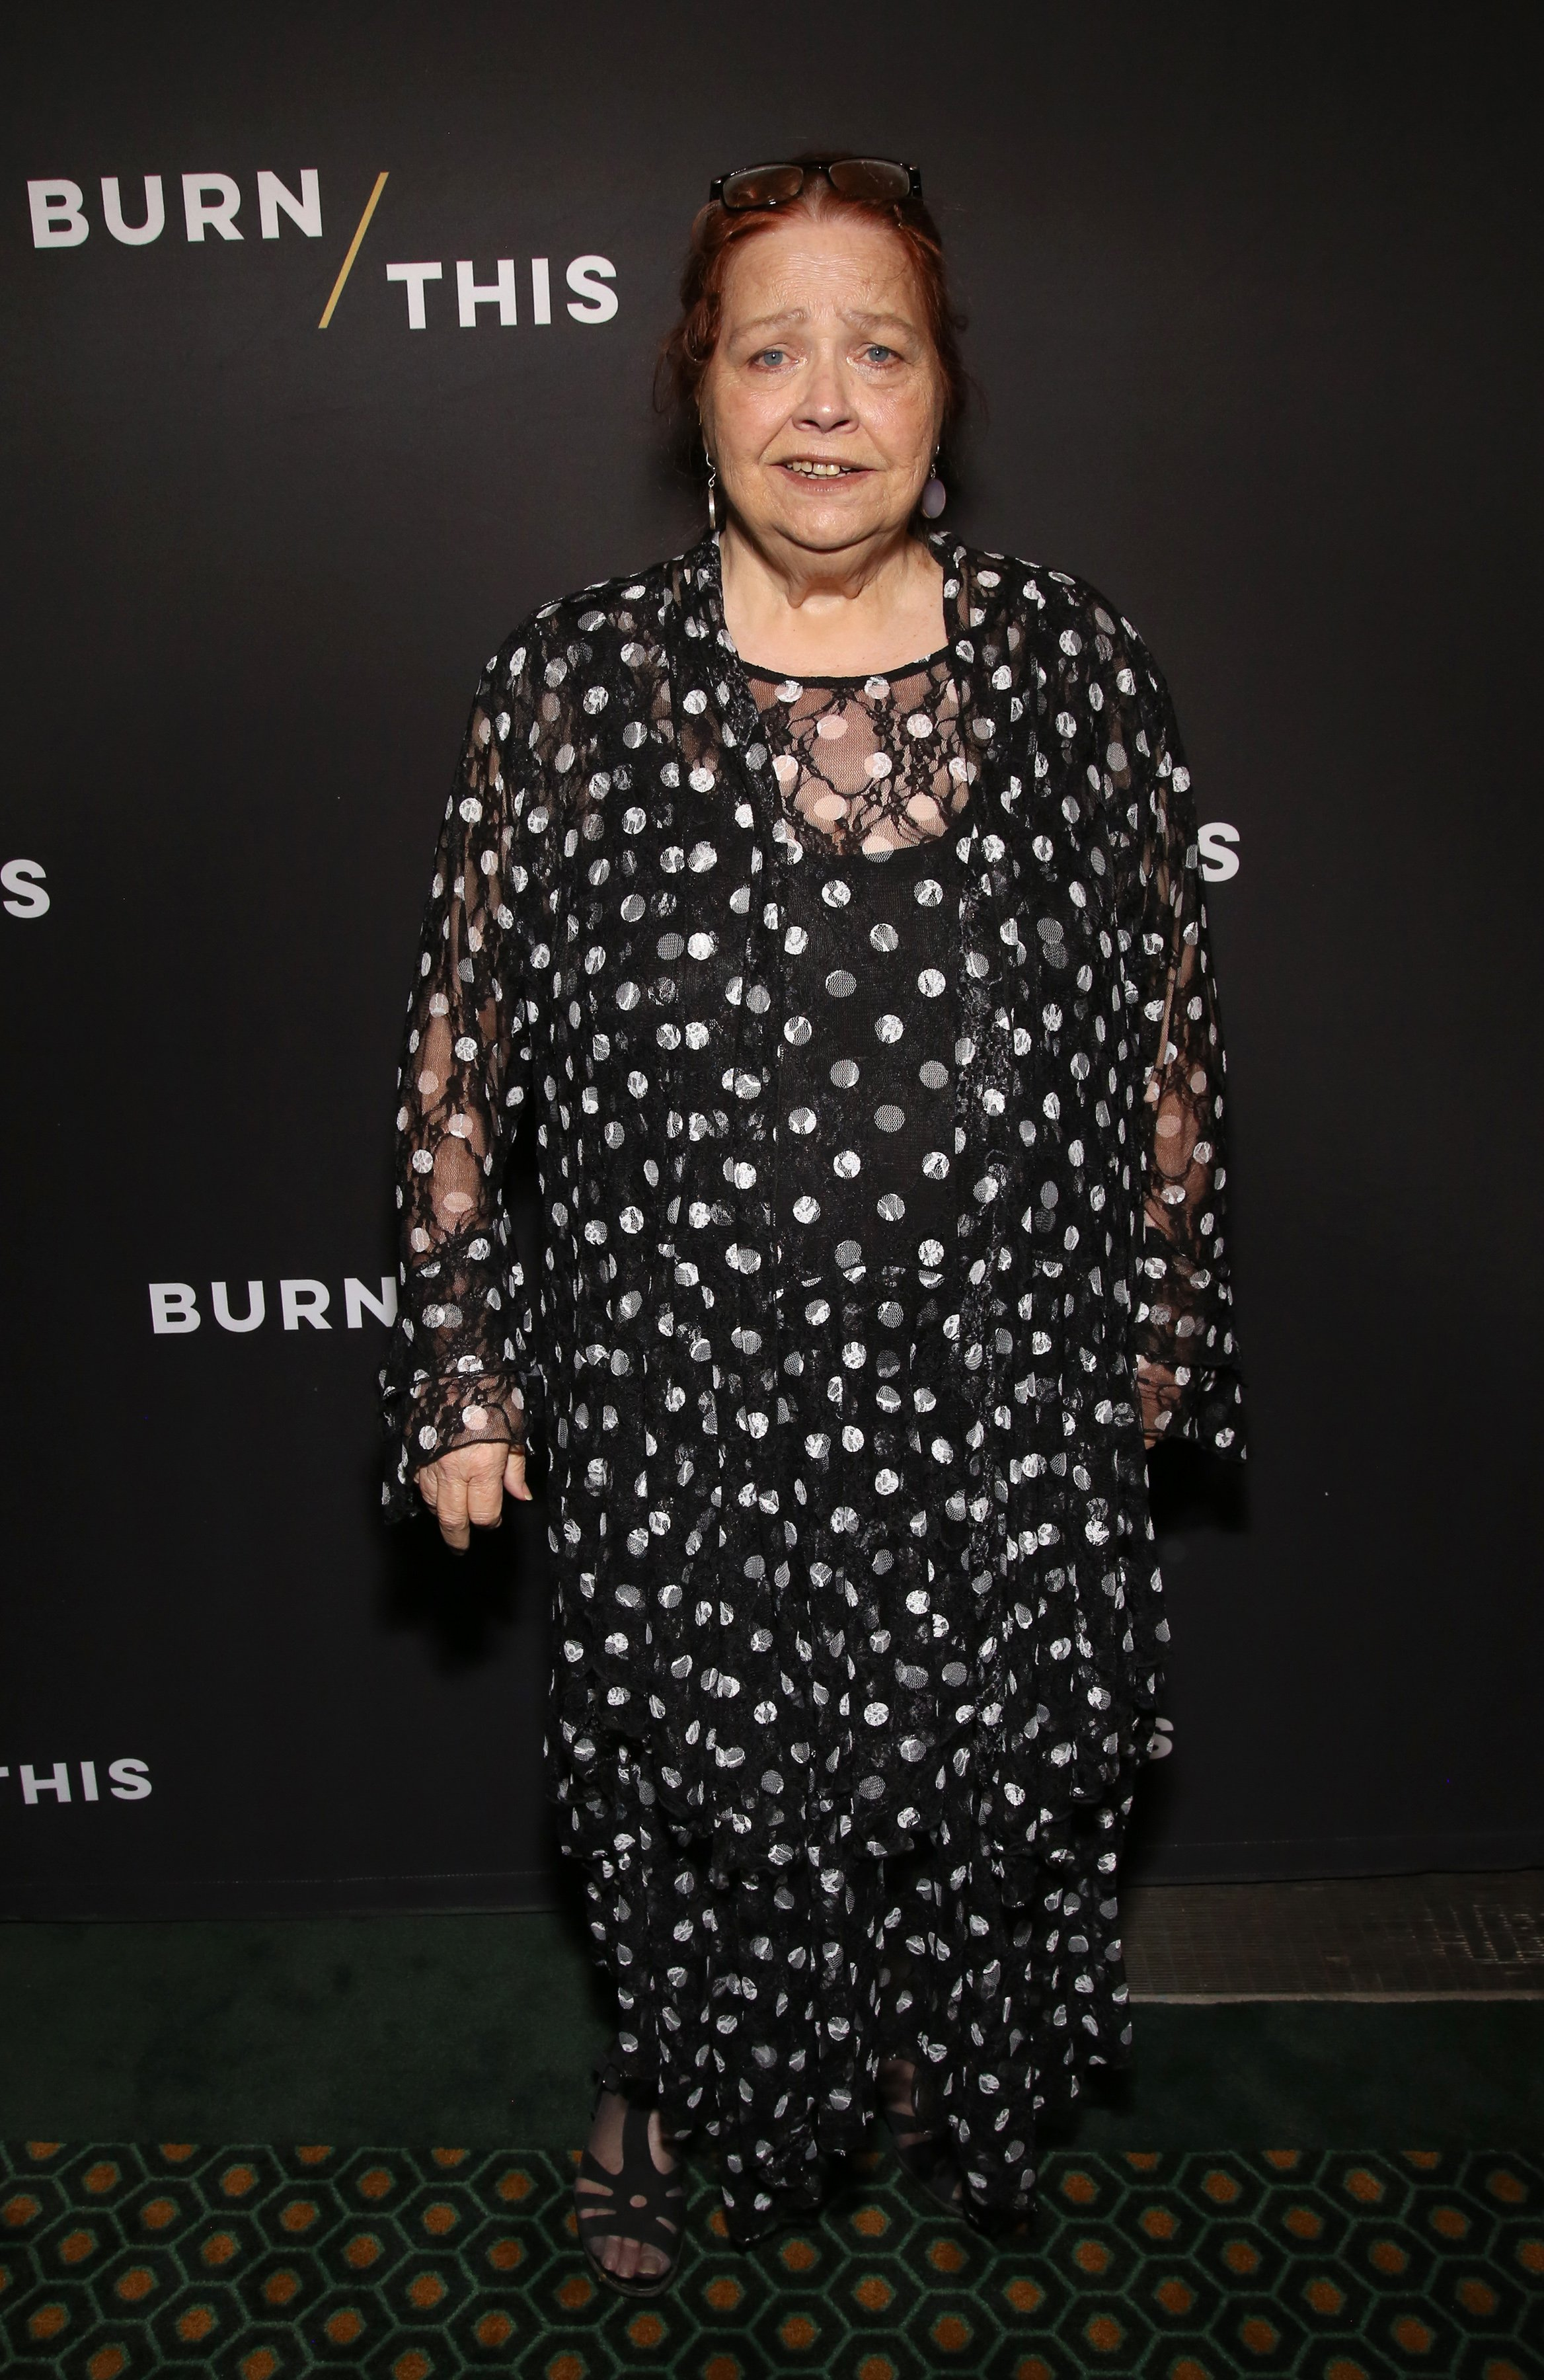 """Conchata Ferrell attends the opening night of """"Burn This"""" in New York City on April 15, 2019 